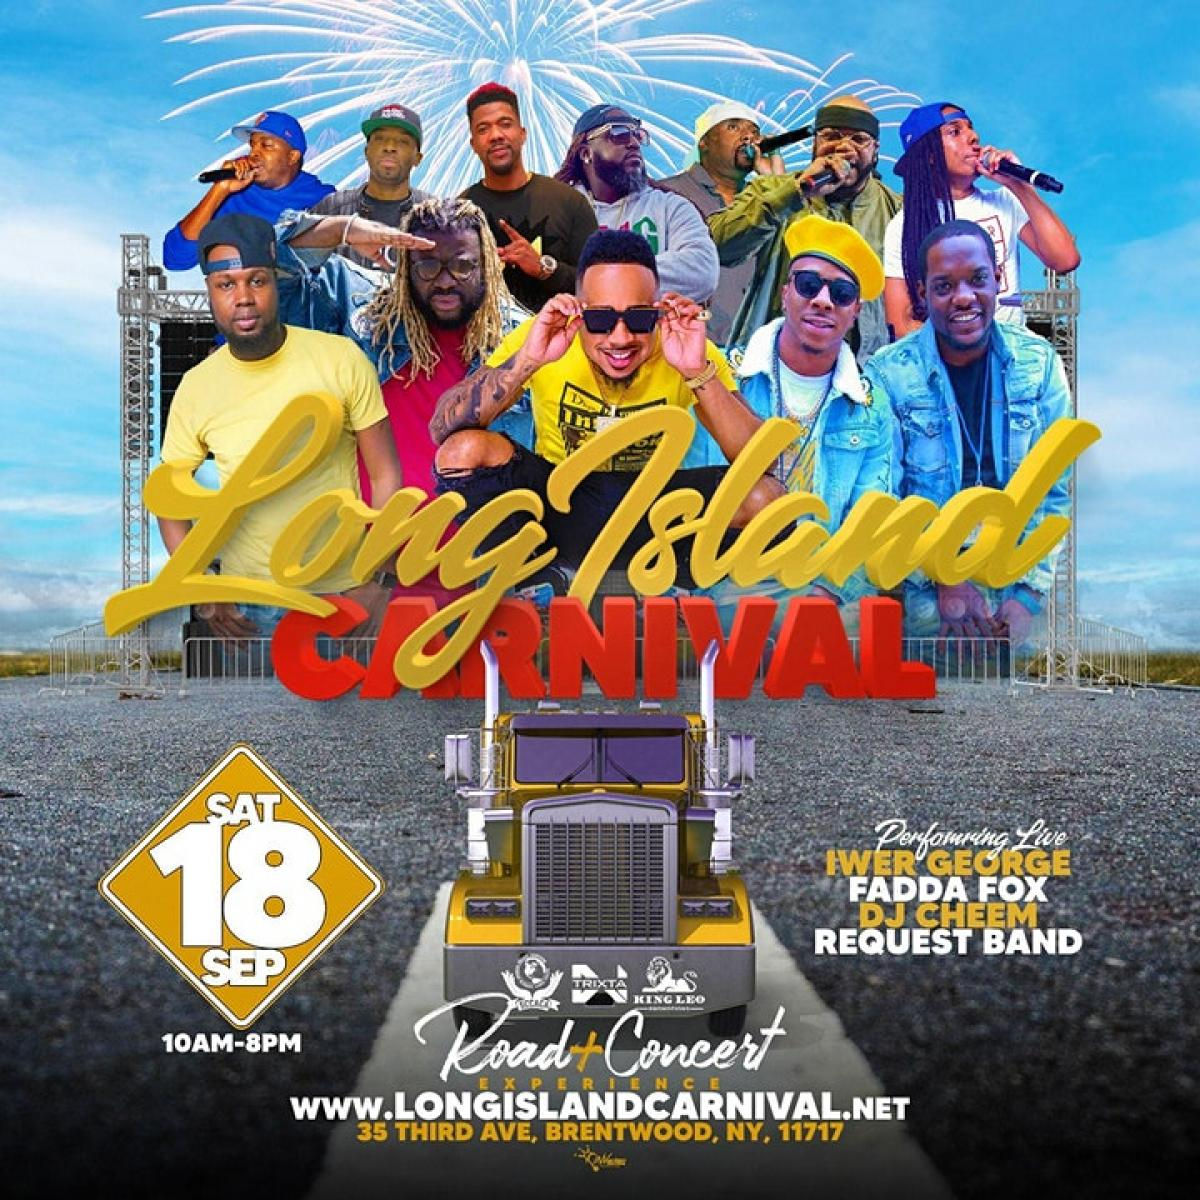 Long Island Carnival Road Experience & Concert flyer or graphic.